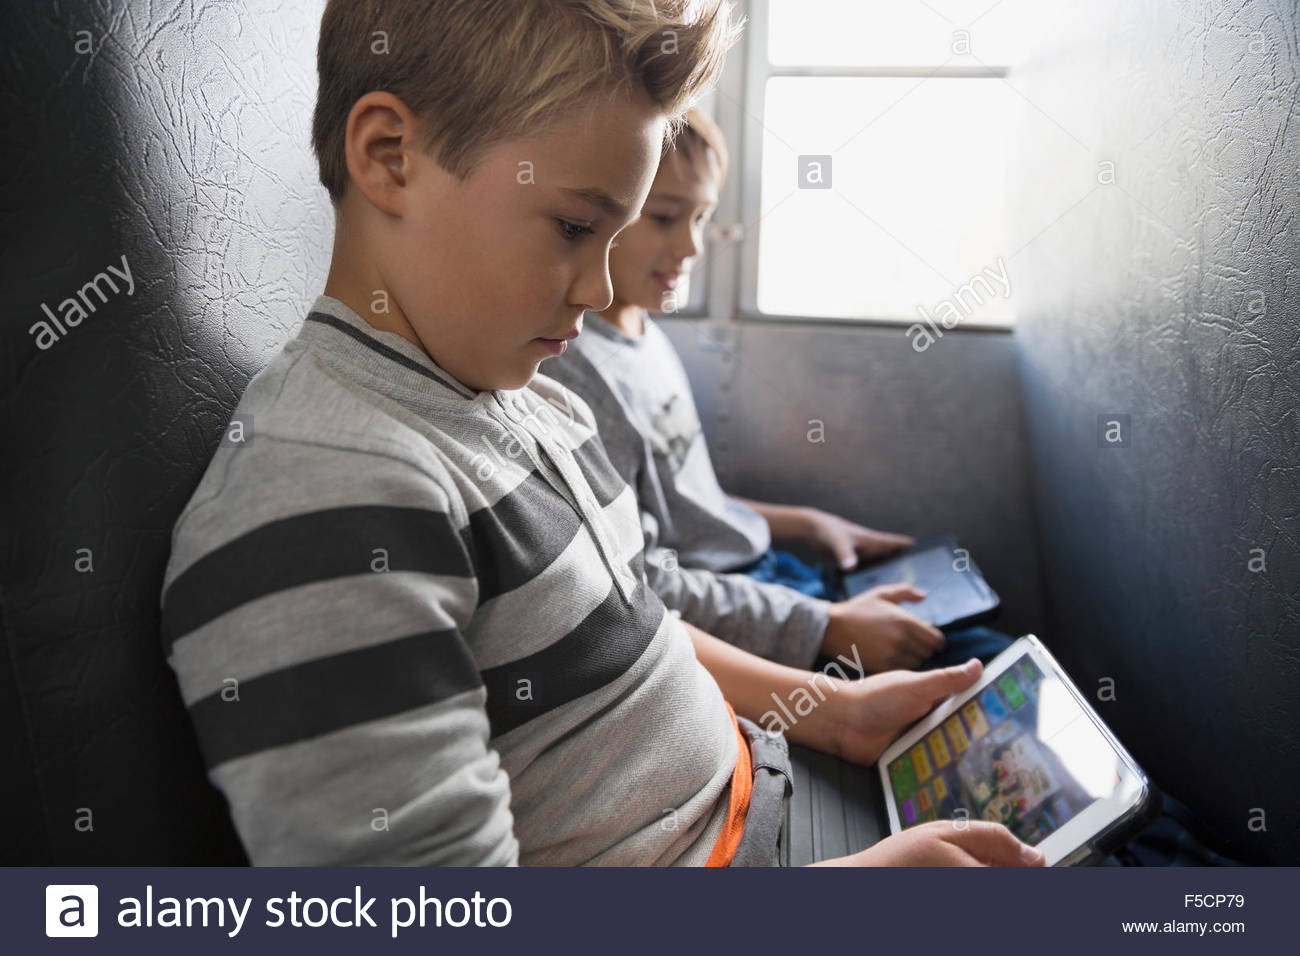 Schoolboy playing game on digital tablet school bus Stock Photo